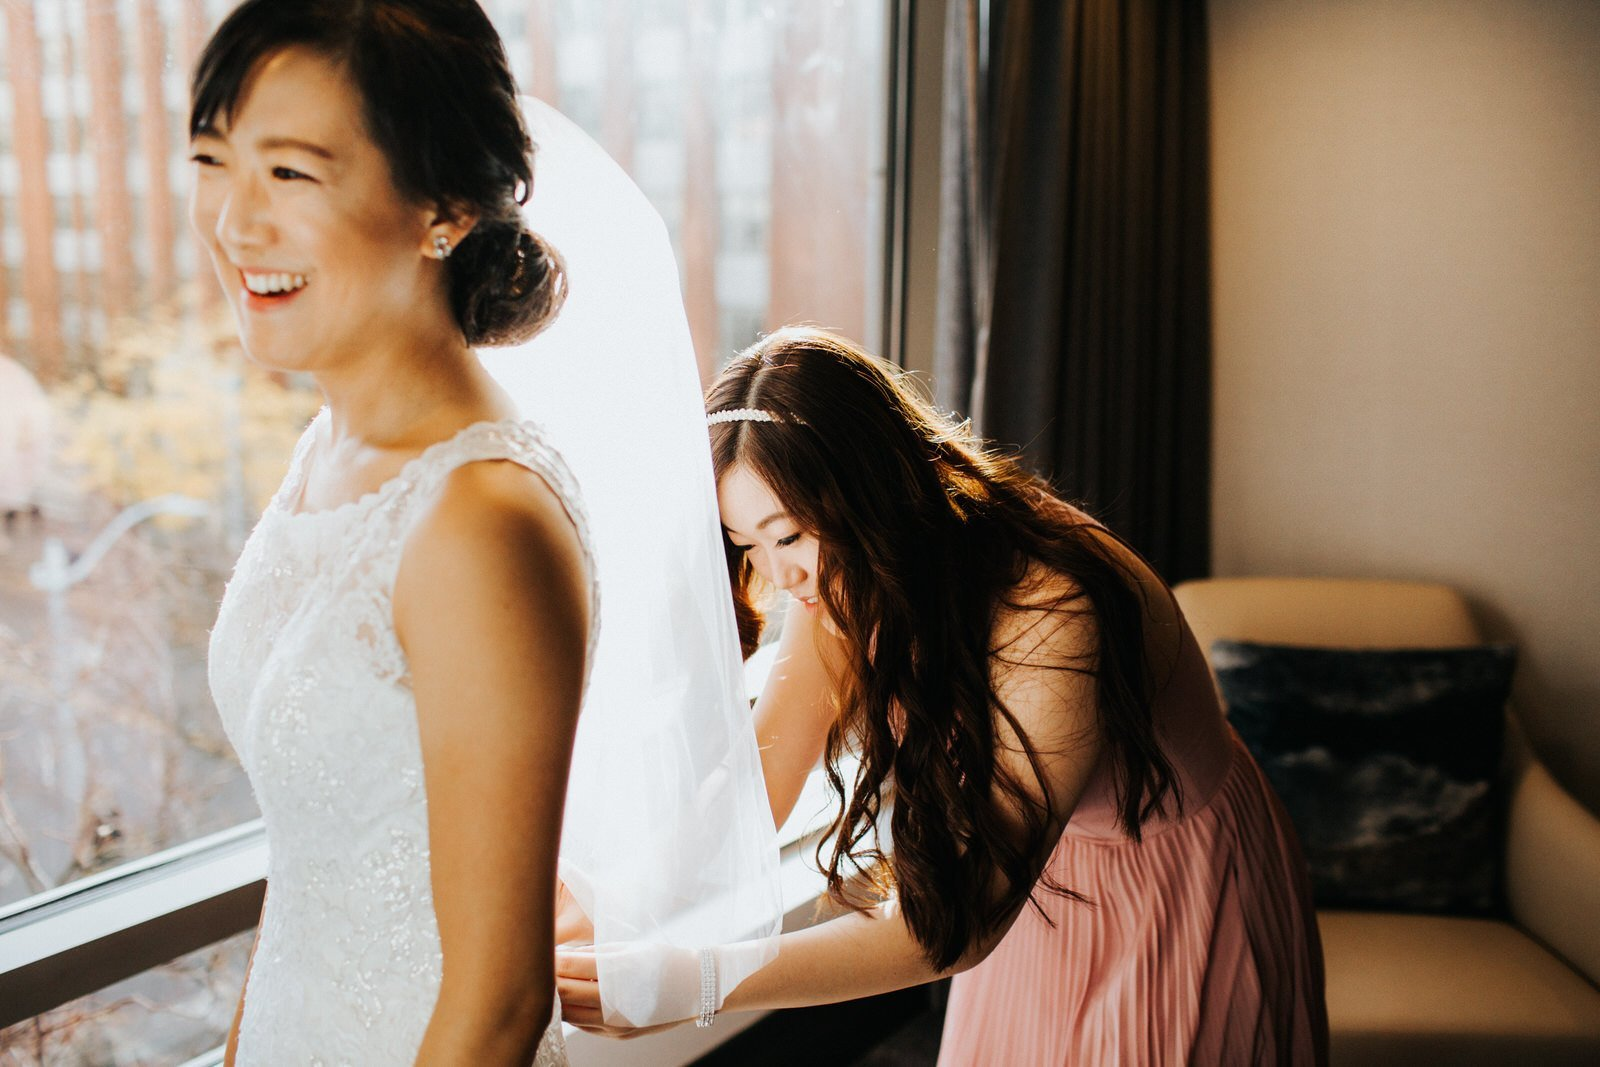 Maid of honor helps the bride into her dress